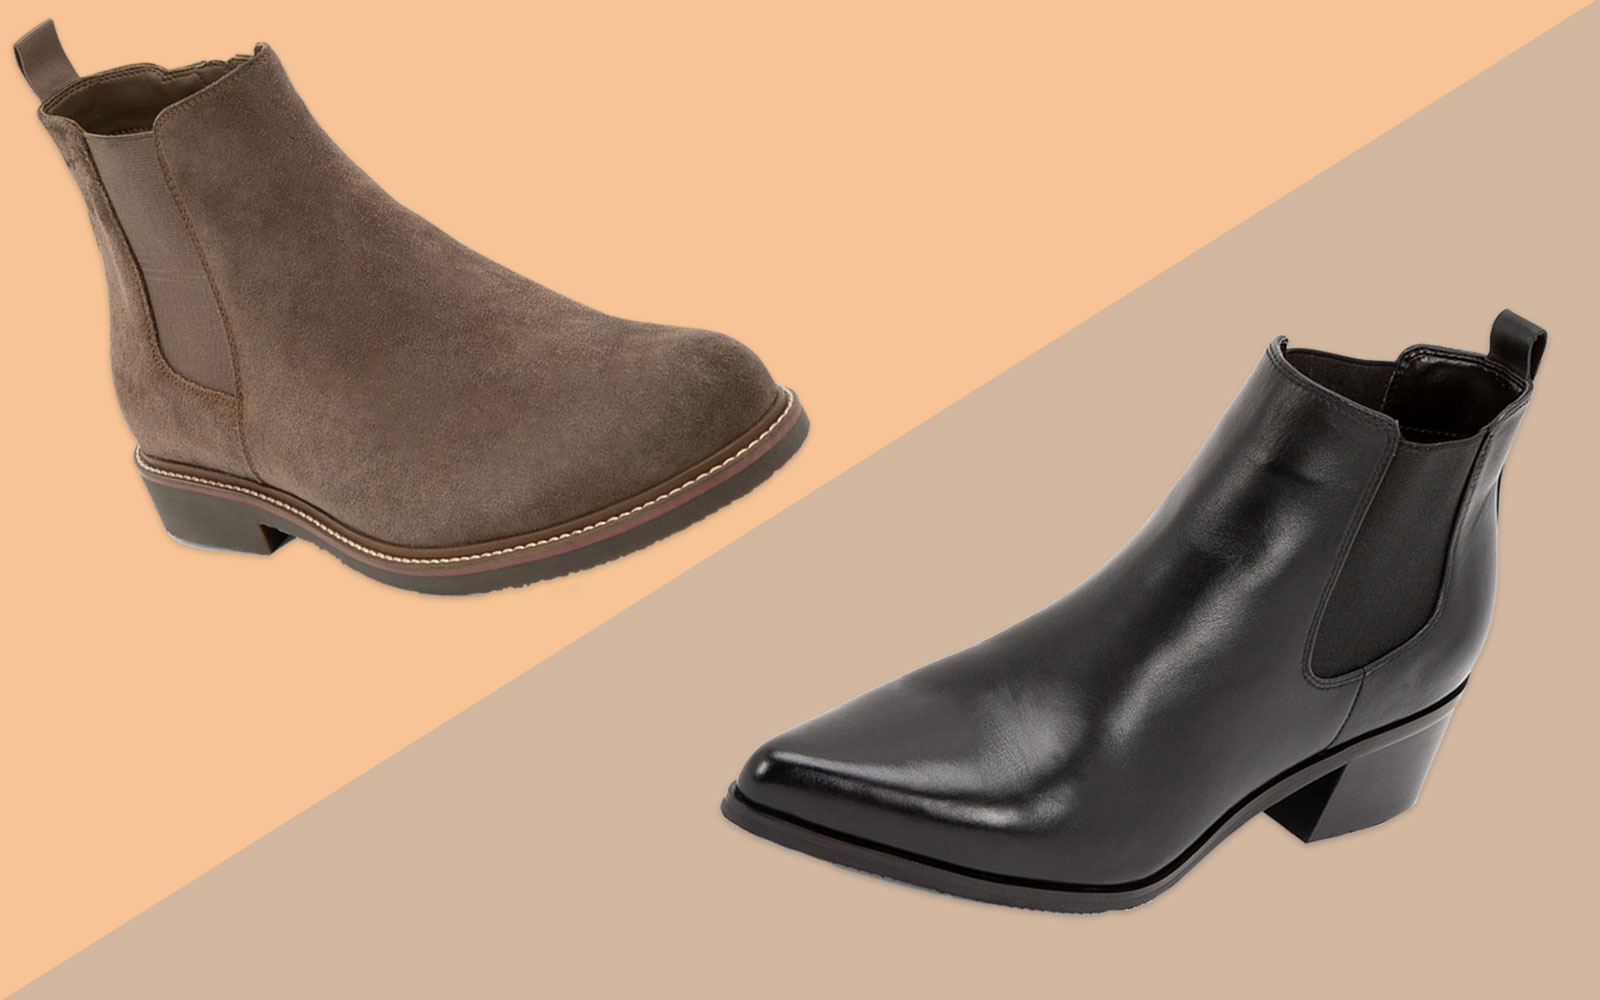 Men's Brown Leather Chelsea Boots and Women's Black Pointed Toe Leather Chelsea Boots